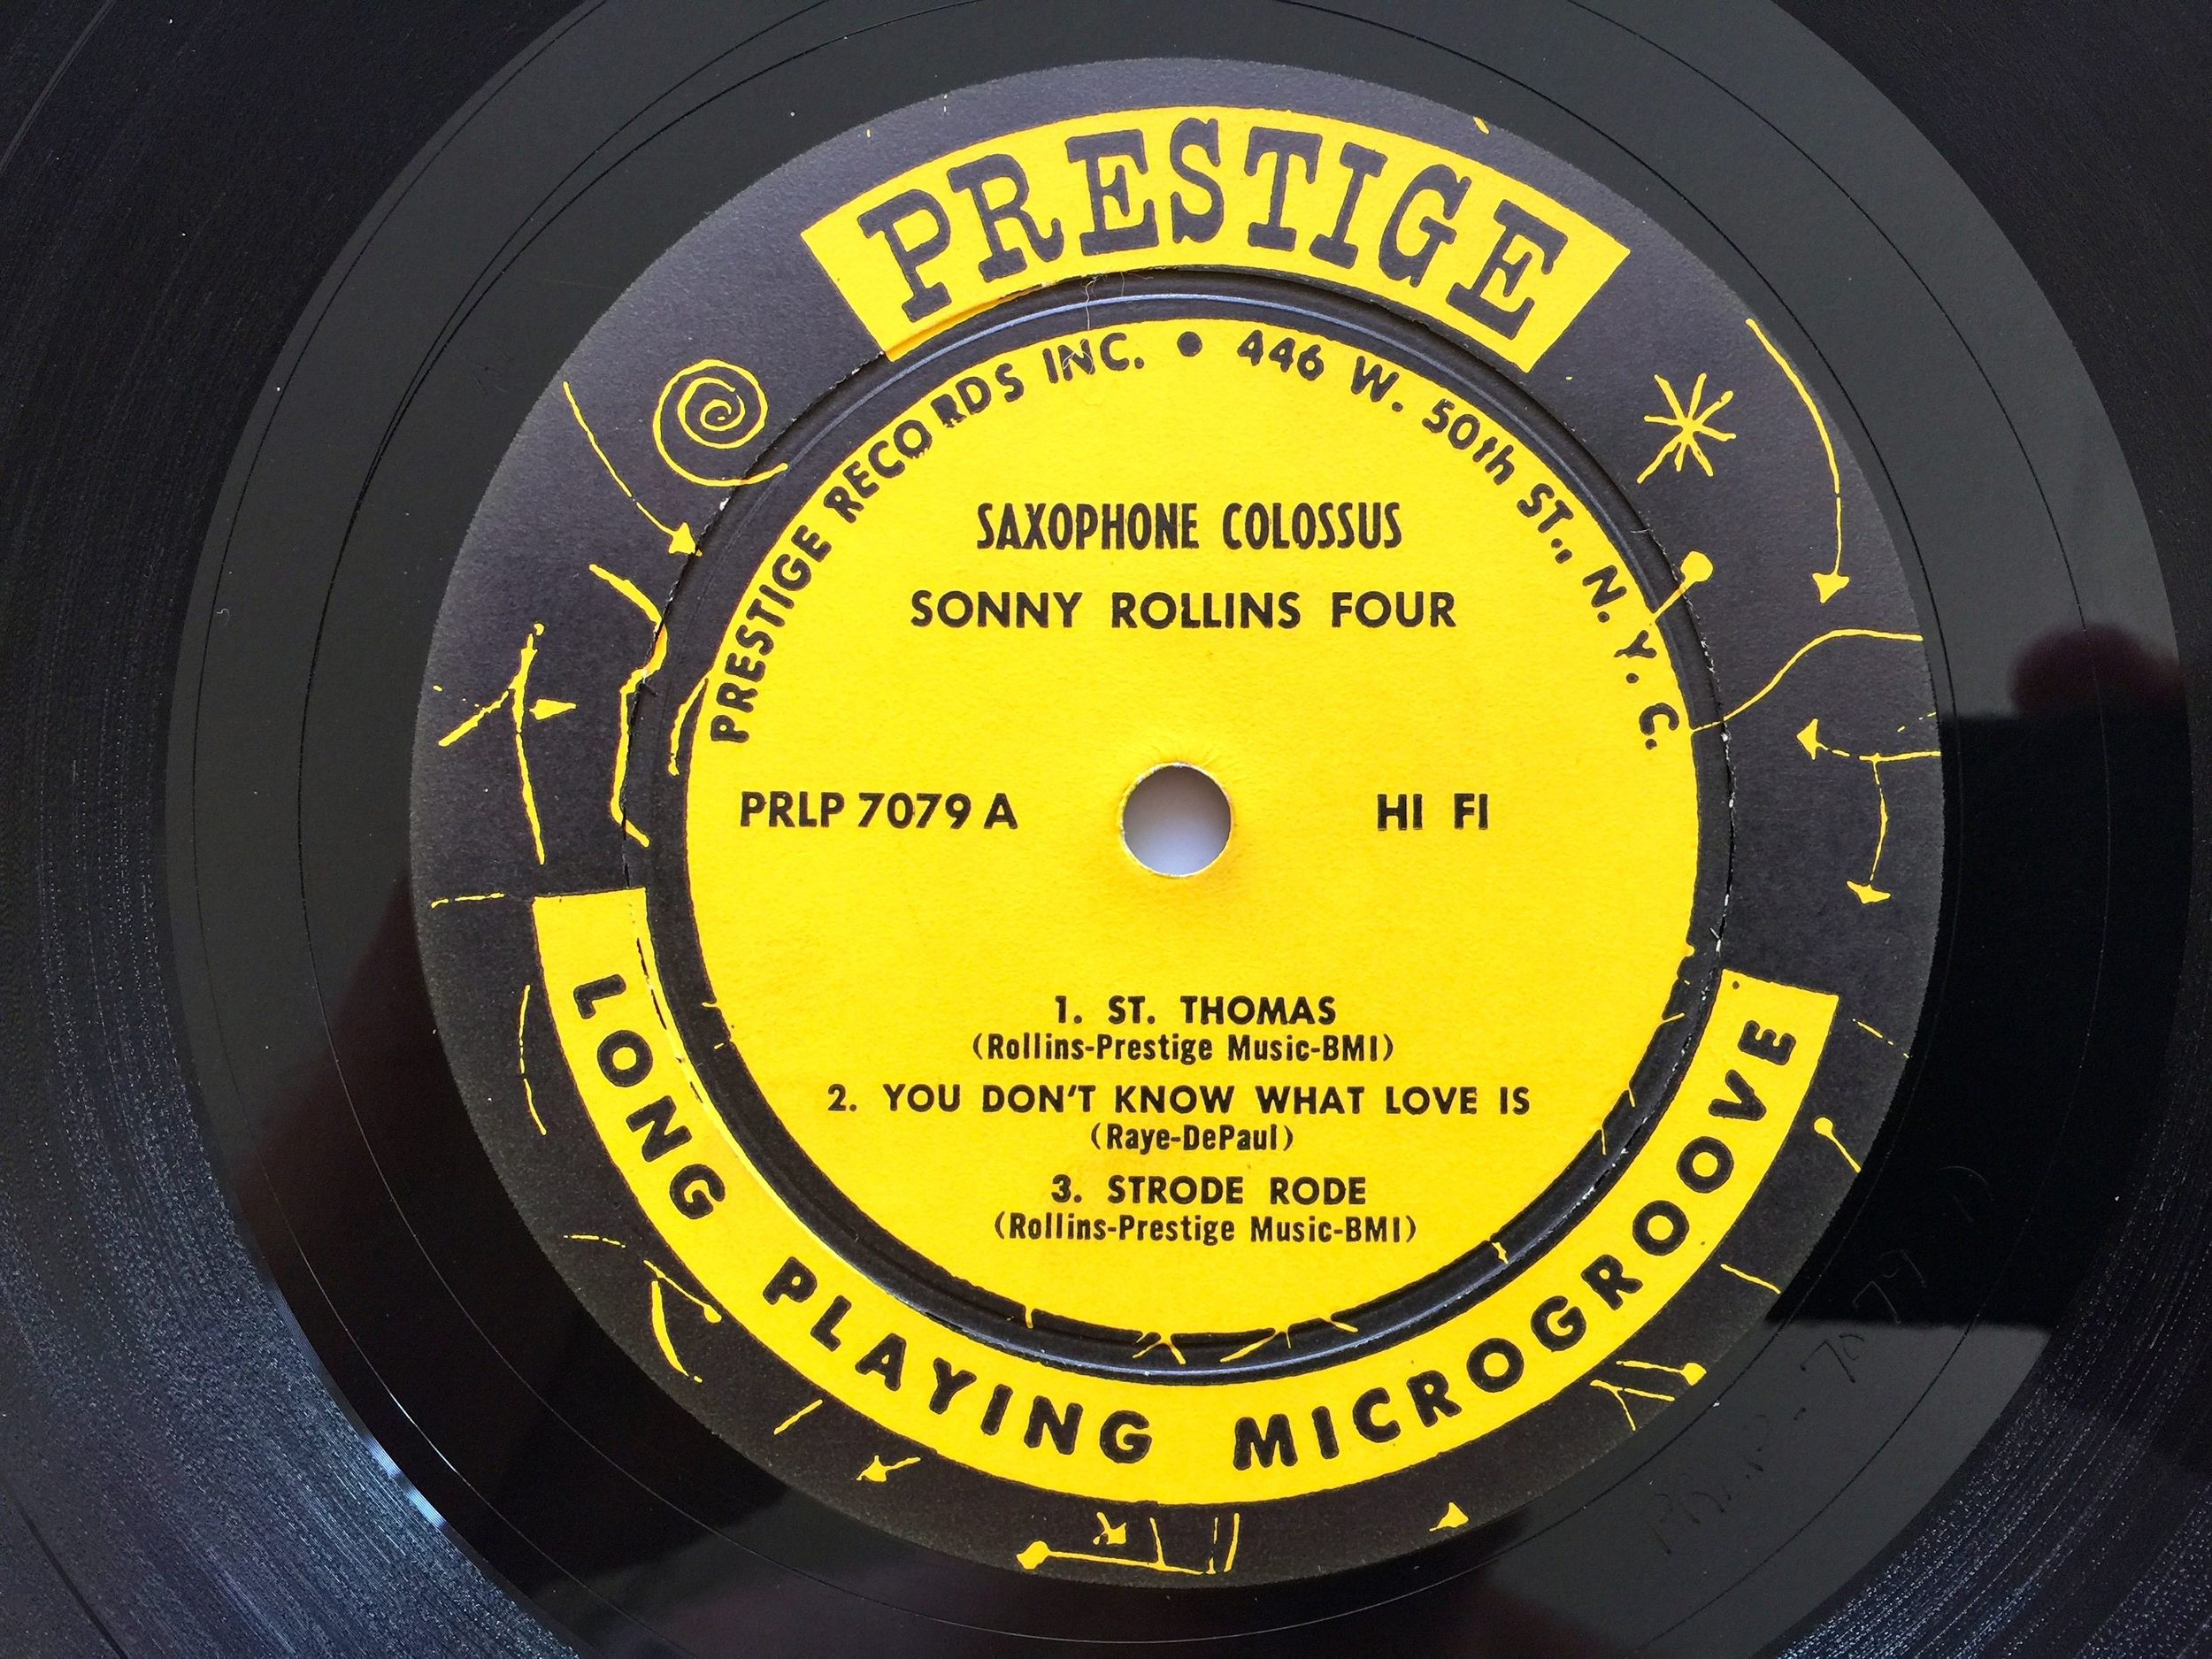 prlp7079_label_side1_opt.jpg